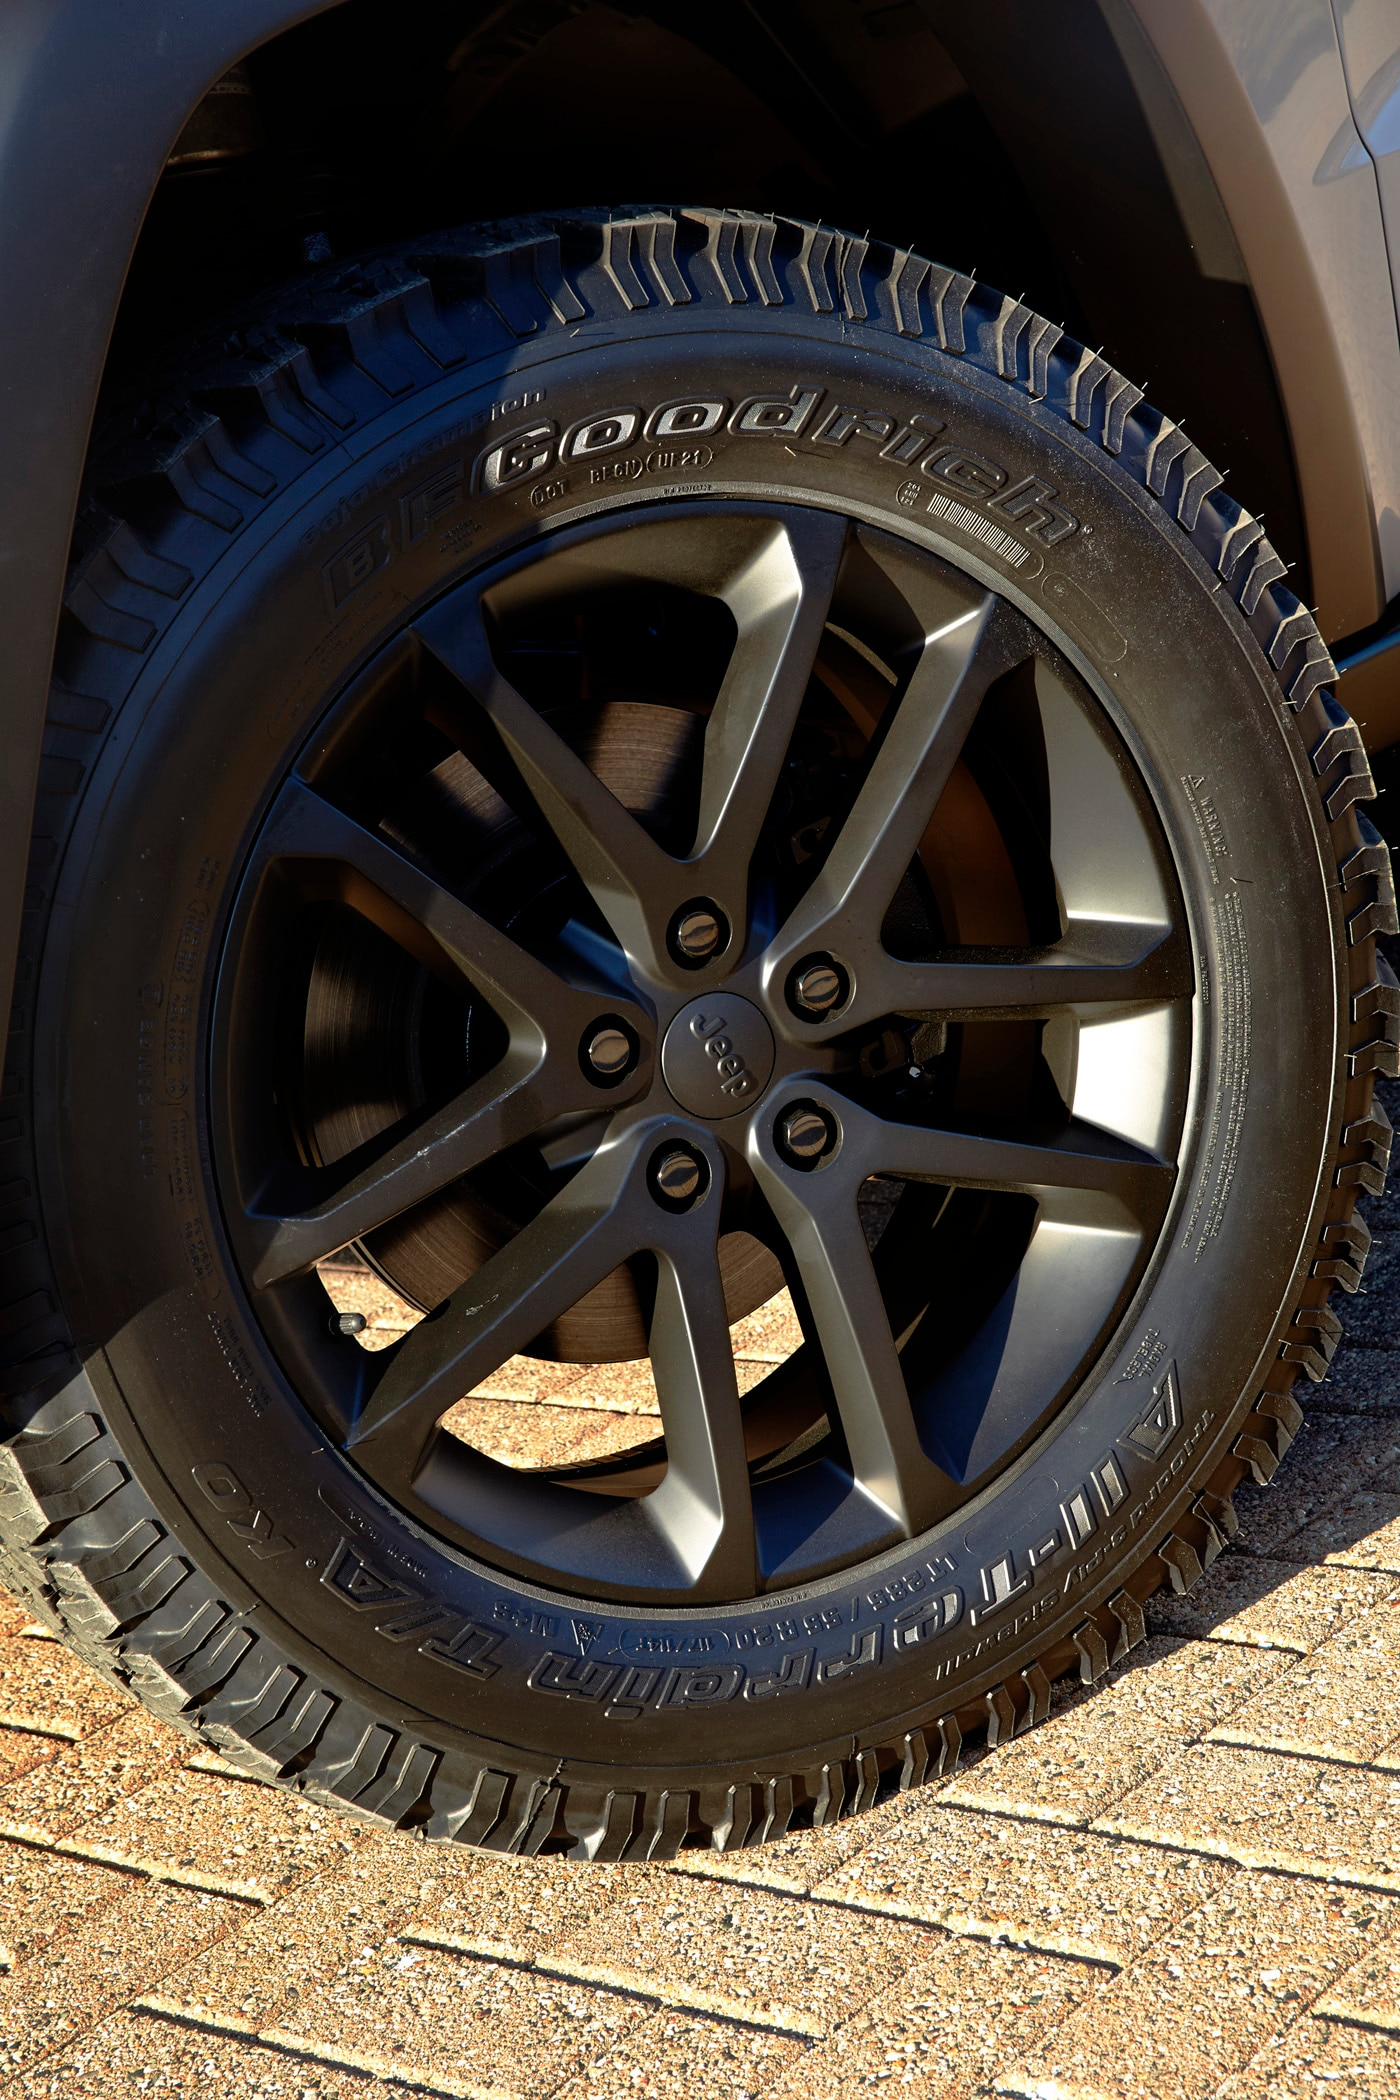 Jeep Grand Cherokee EcoDiesel Trail Warrior Concept wheels